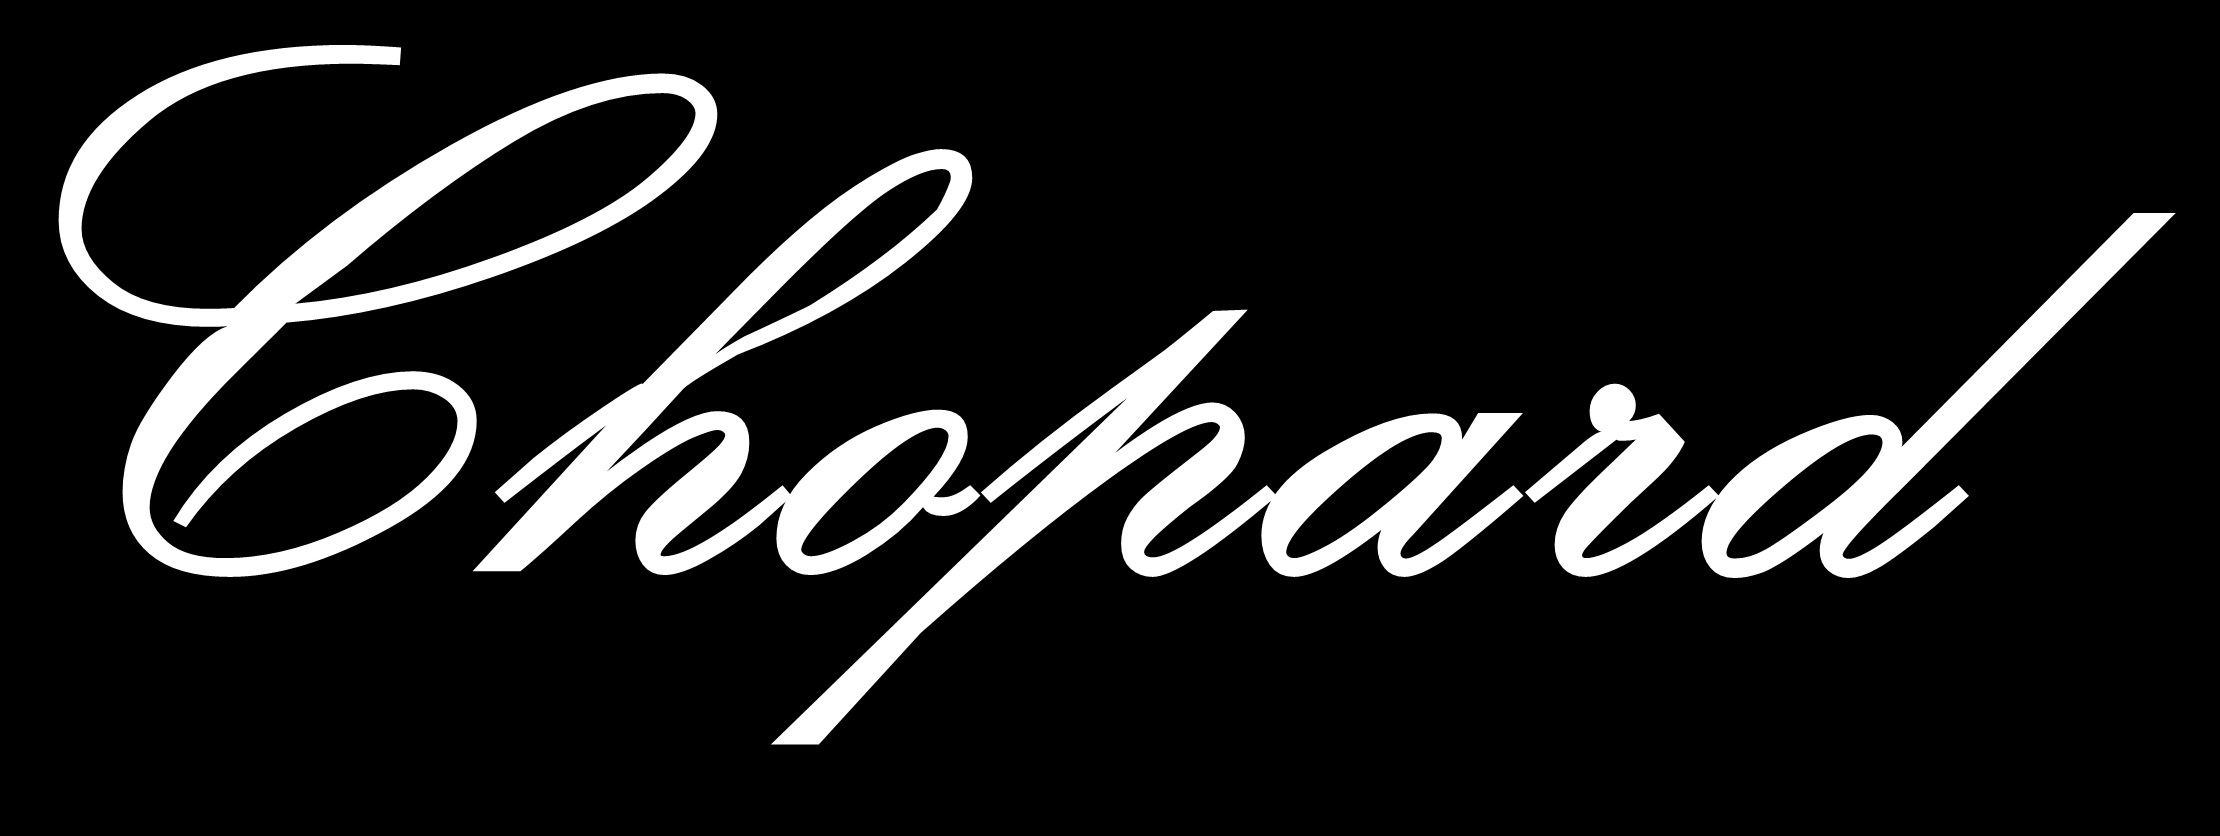 Chopard Logo Wallpaper